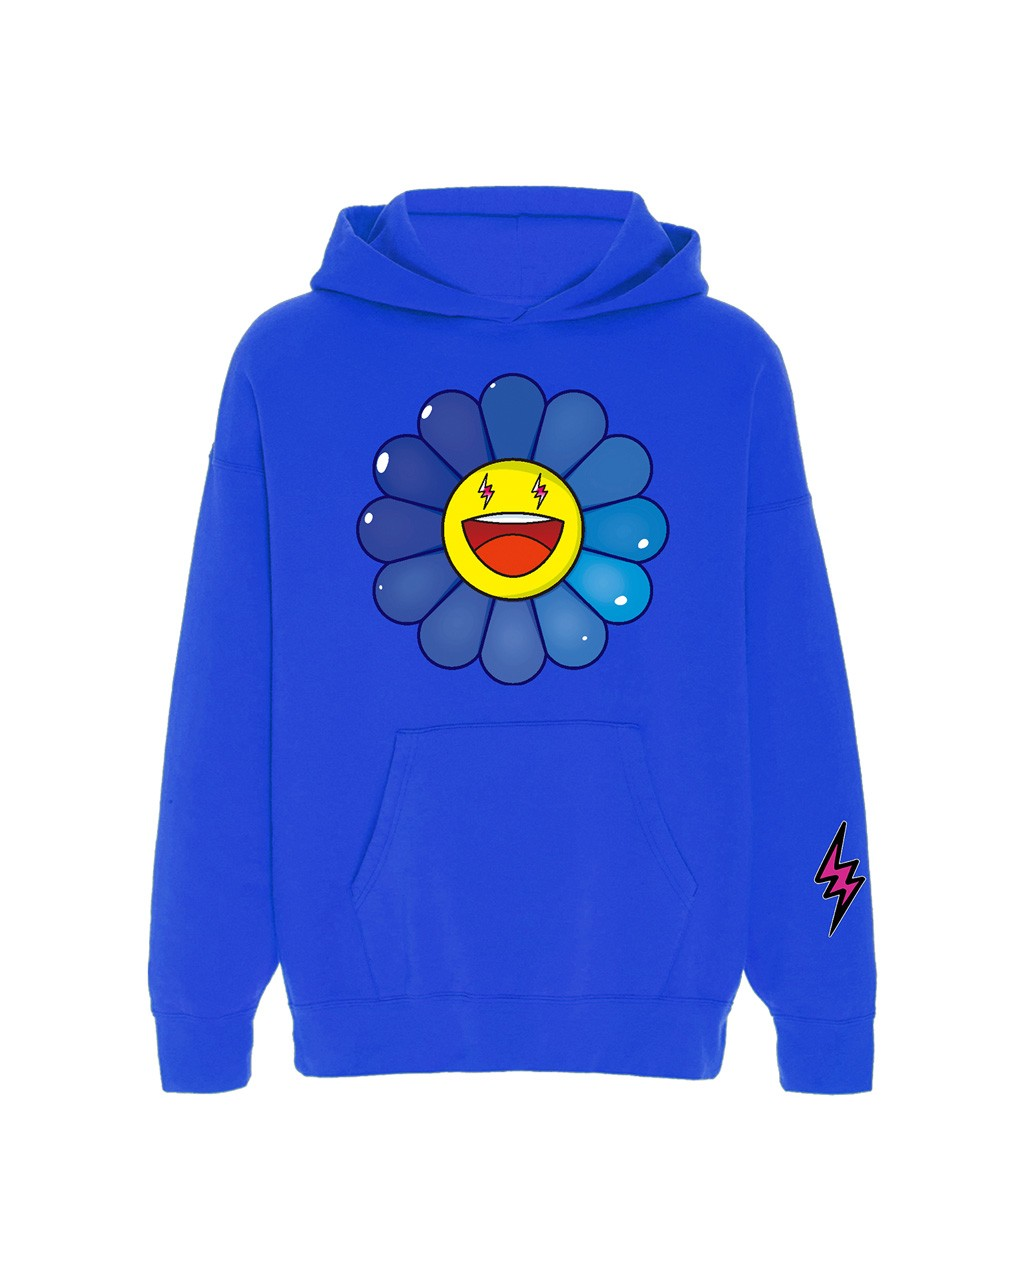 J Balvin x Takashi Murakami 'Colores' Merch Final Drop collection azul rosa negro verde capsule release date info buy hoodies tee shirts